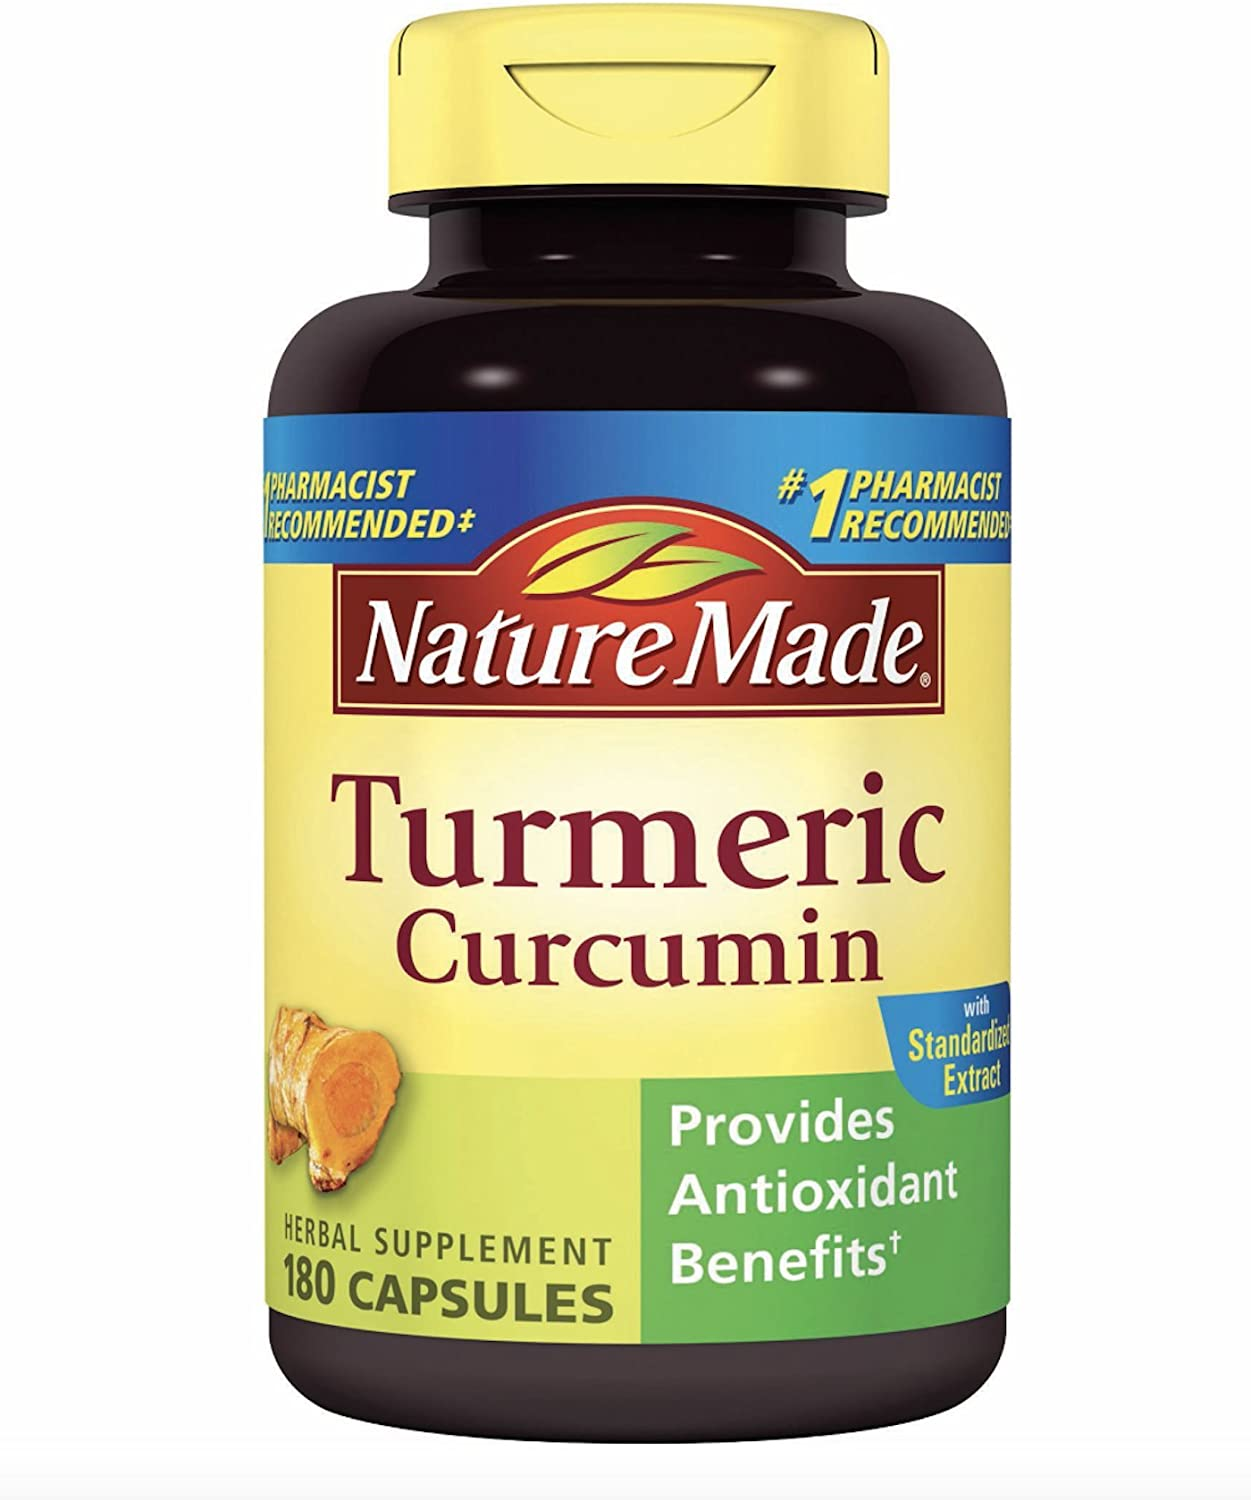 Nature Made Turmeric Curcumin 500 milligram. Capsules Antioxidant Value Size 180 Ct